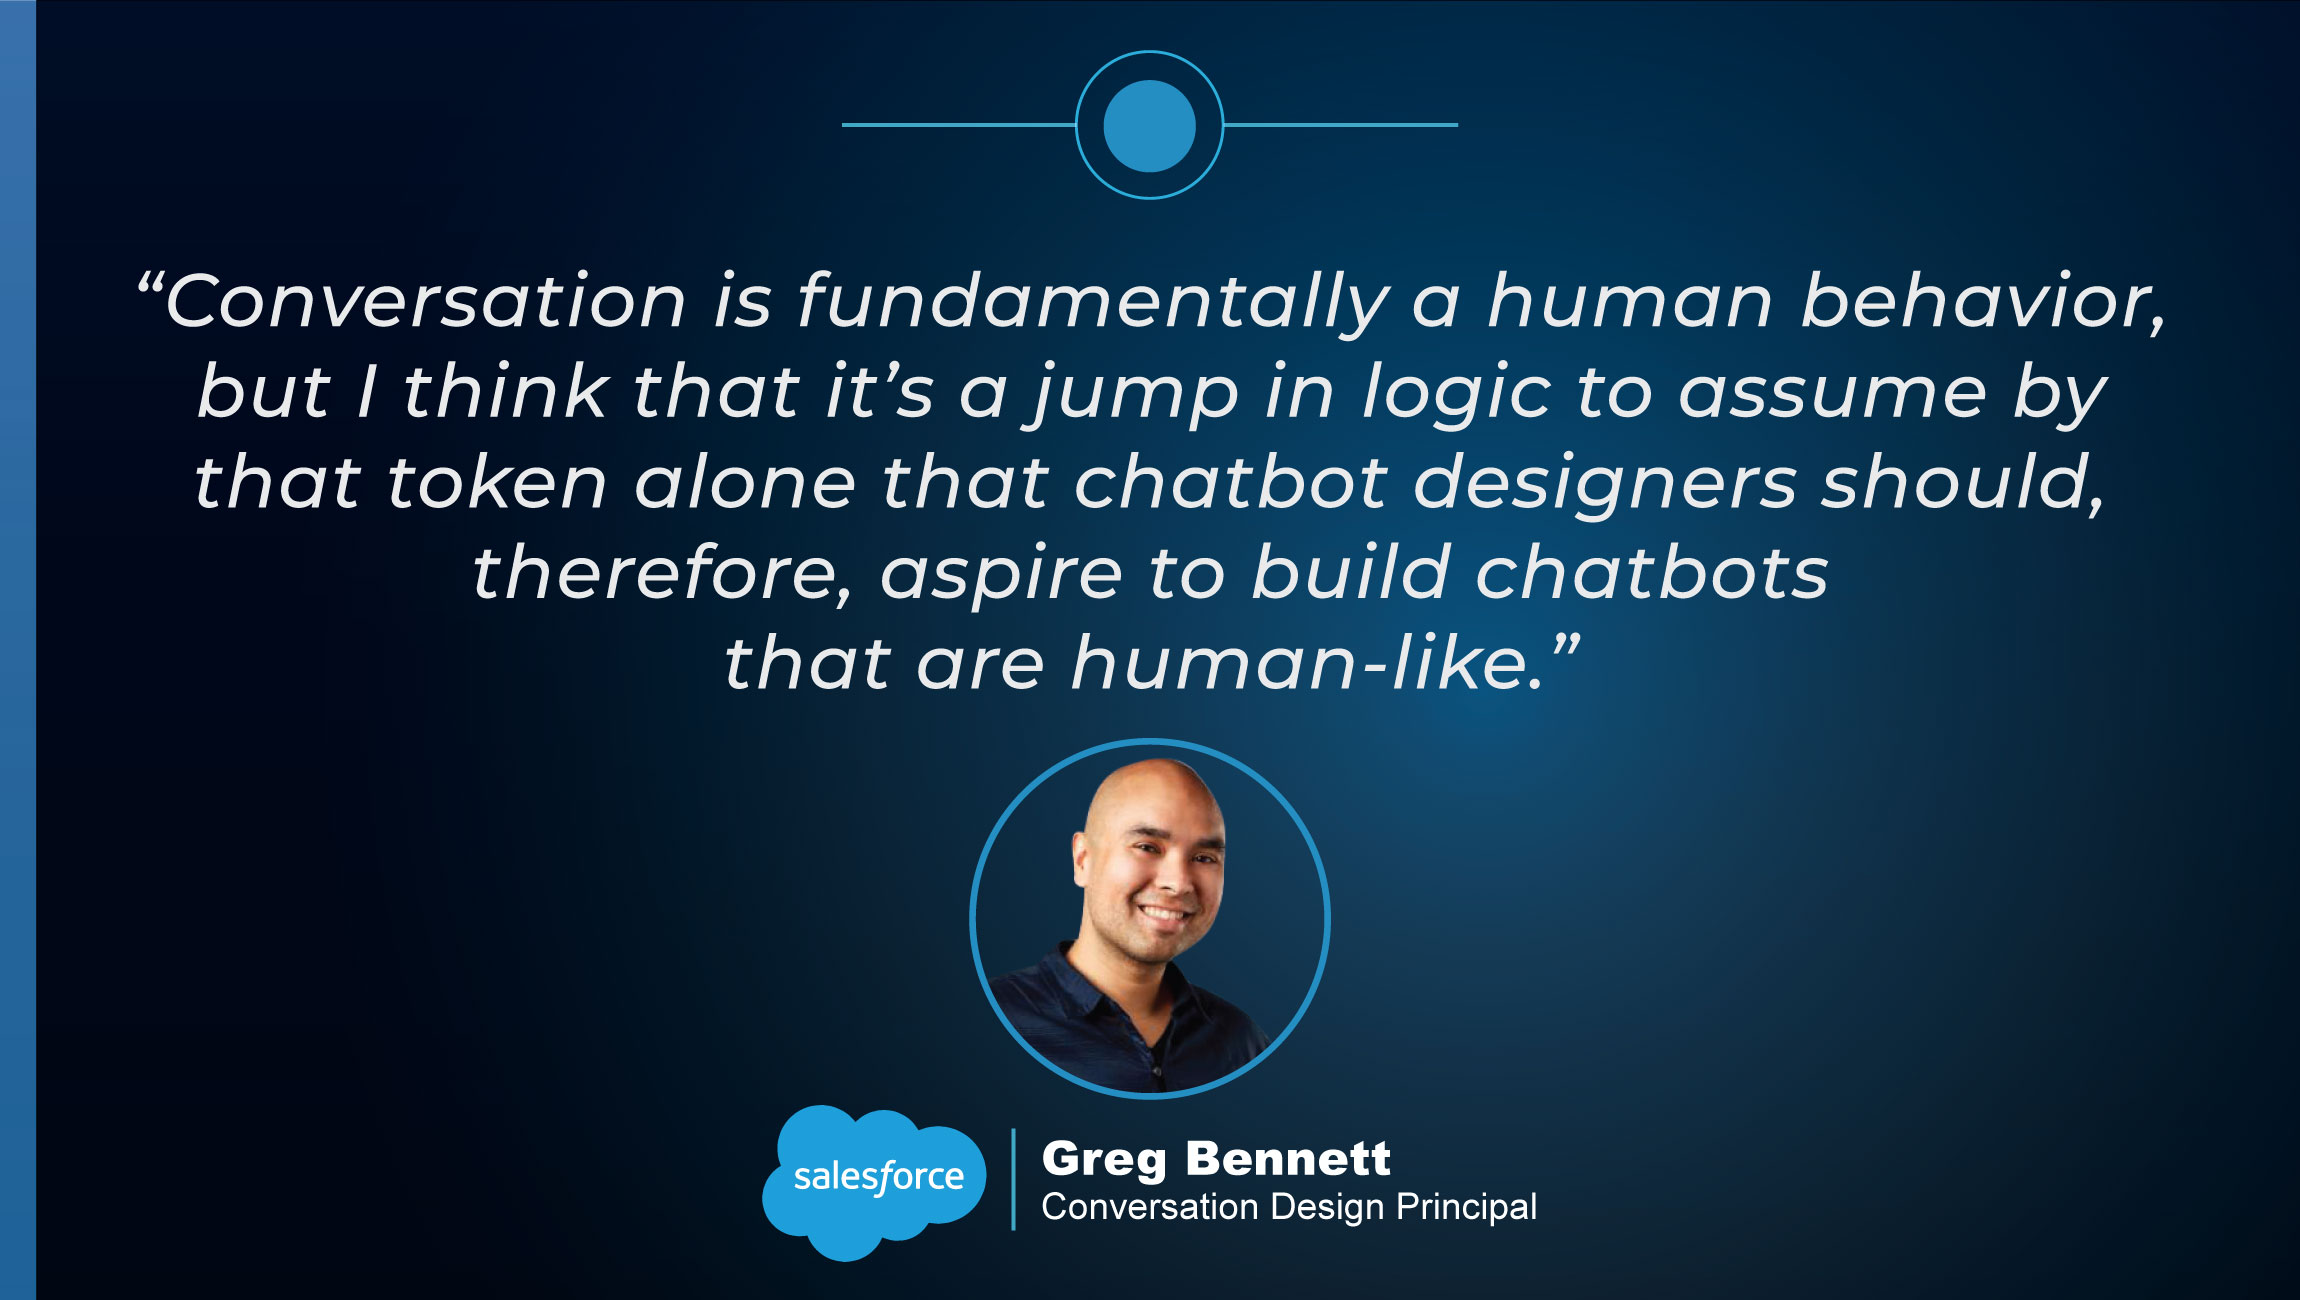 TechBytes with Greg Bennett, Conversation Design Lead at Salesforce quotes